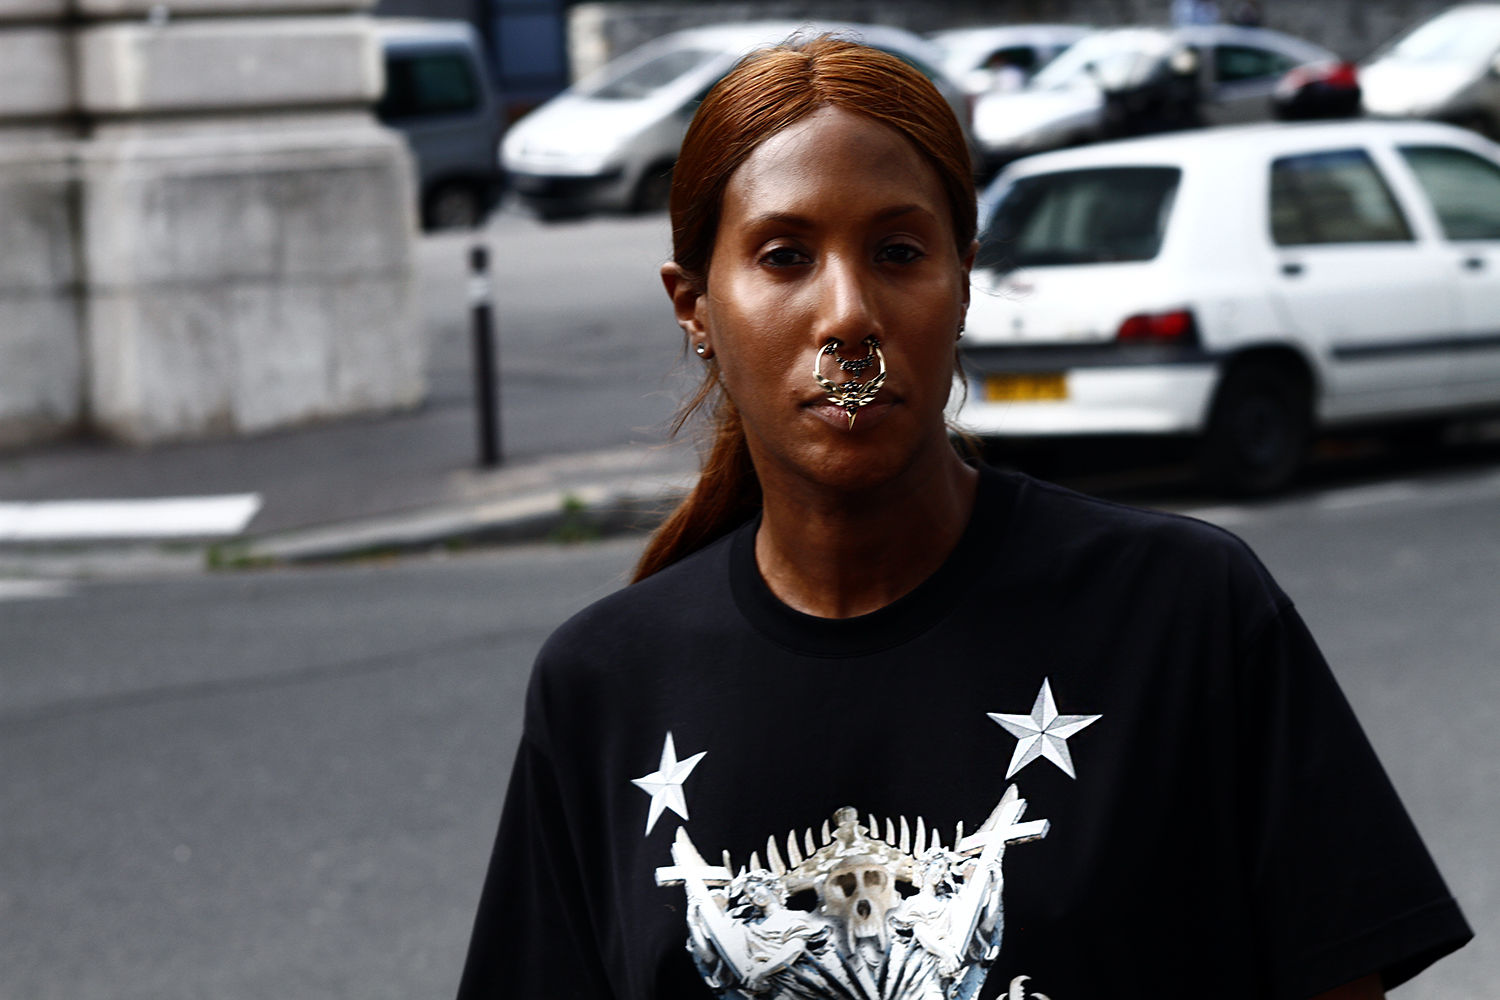 2012_06 Tuukka Laurila Paris Mens Fashion Week Street Style - Honey Dijon In Givenchy T-Shirt and with Givenchy SS 12 Nose Piercing2